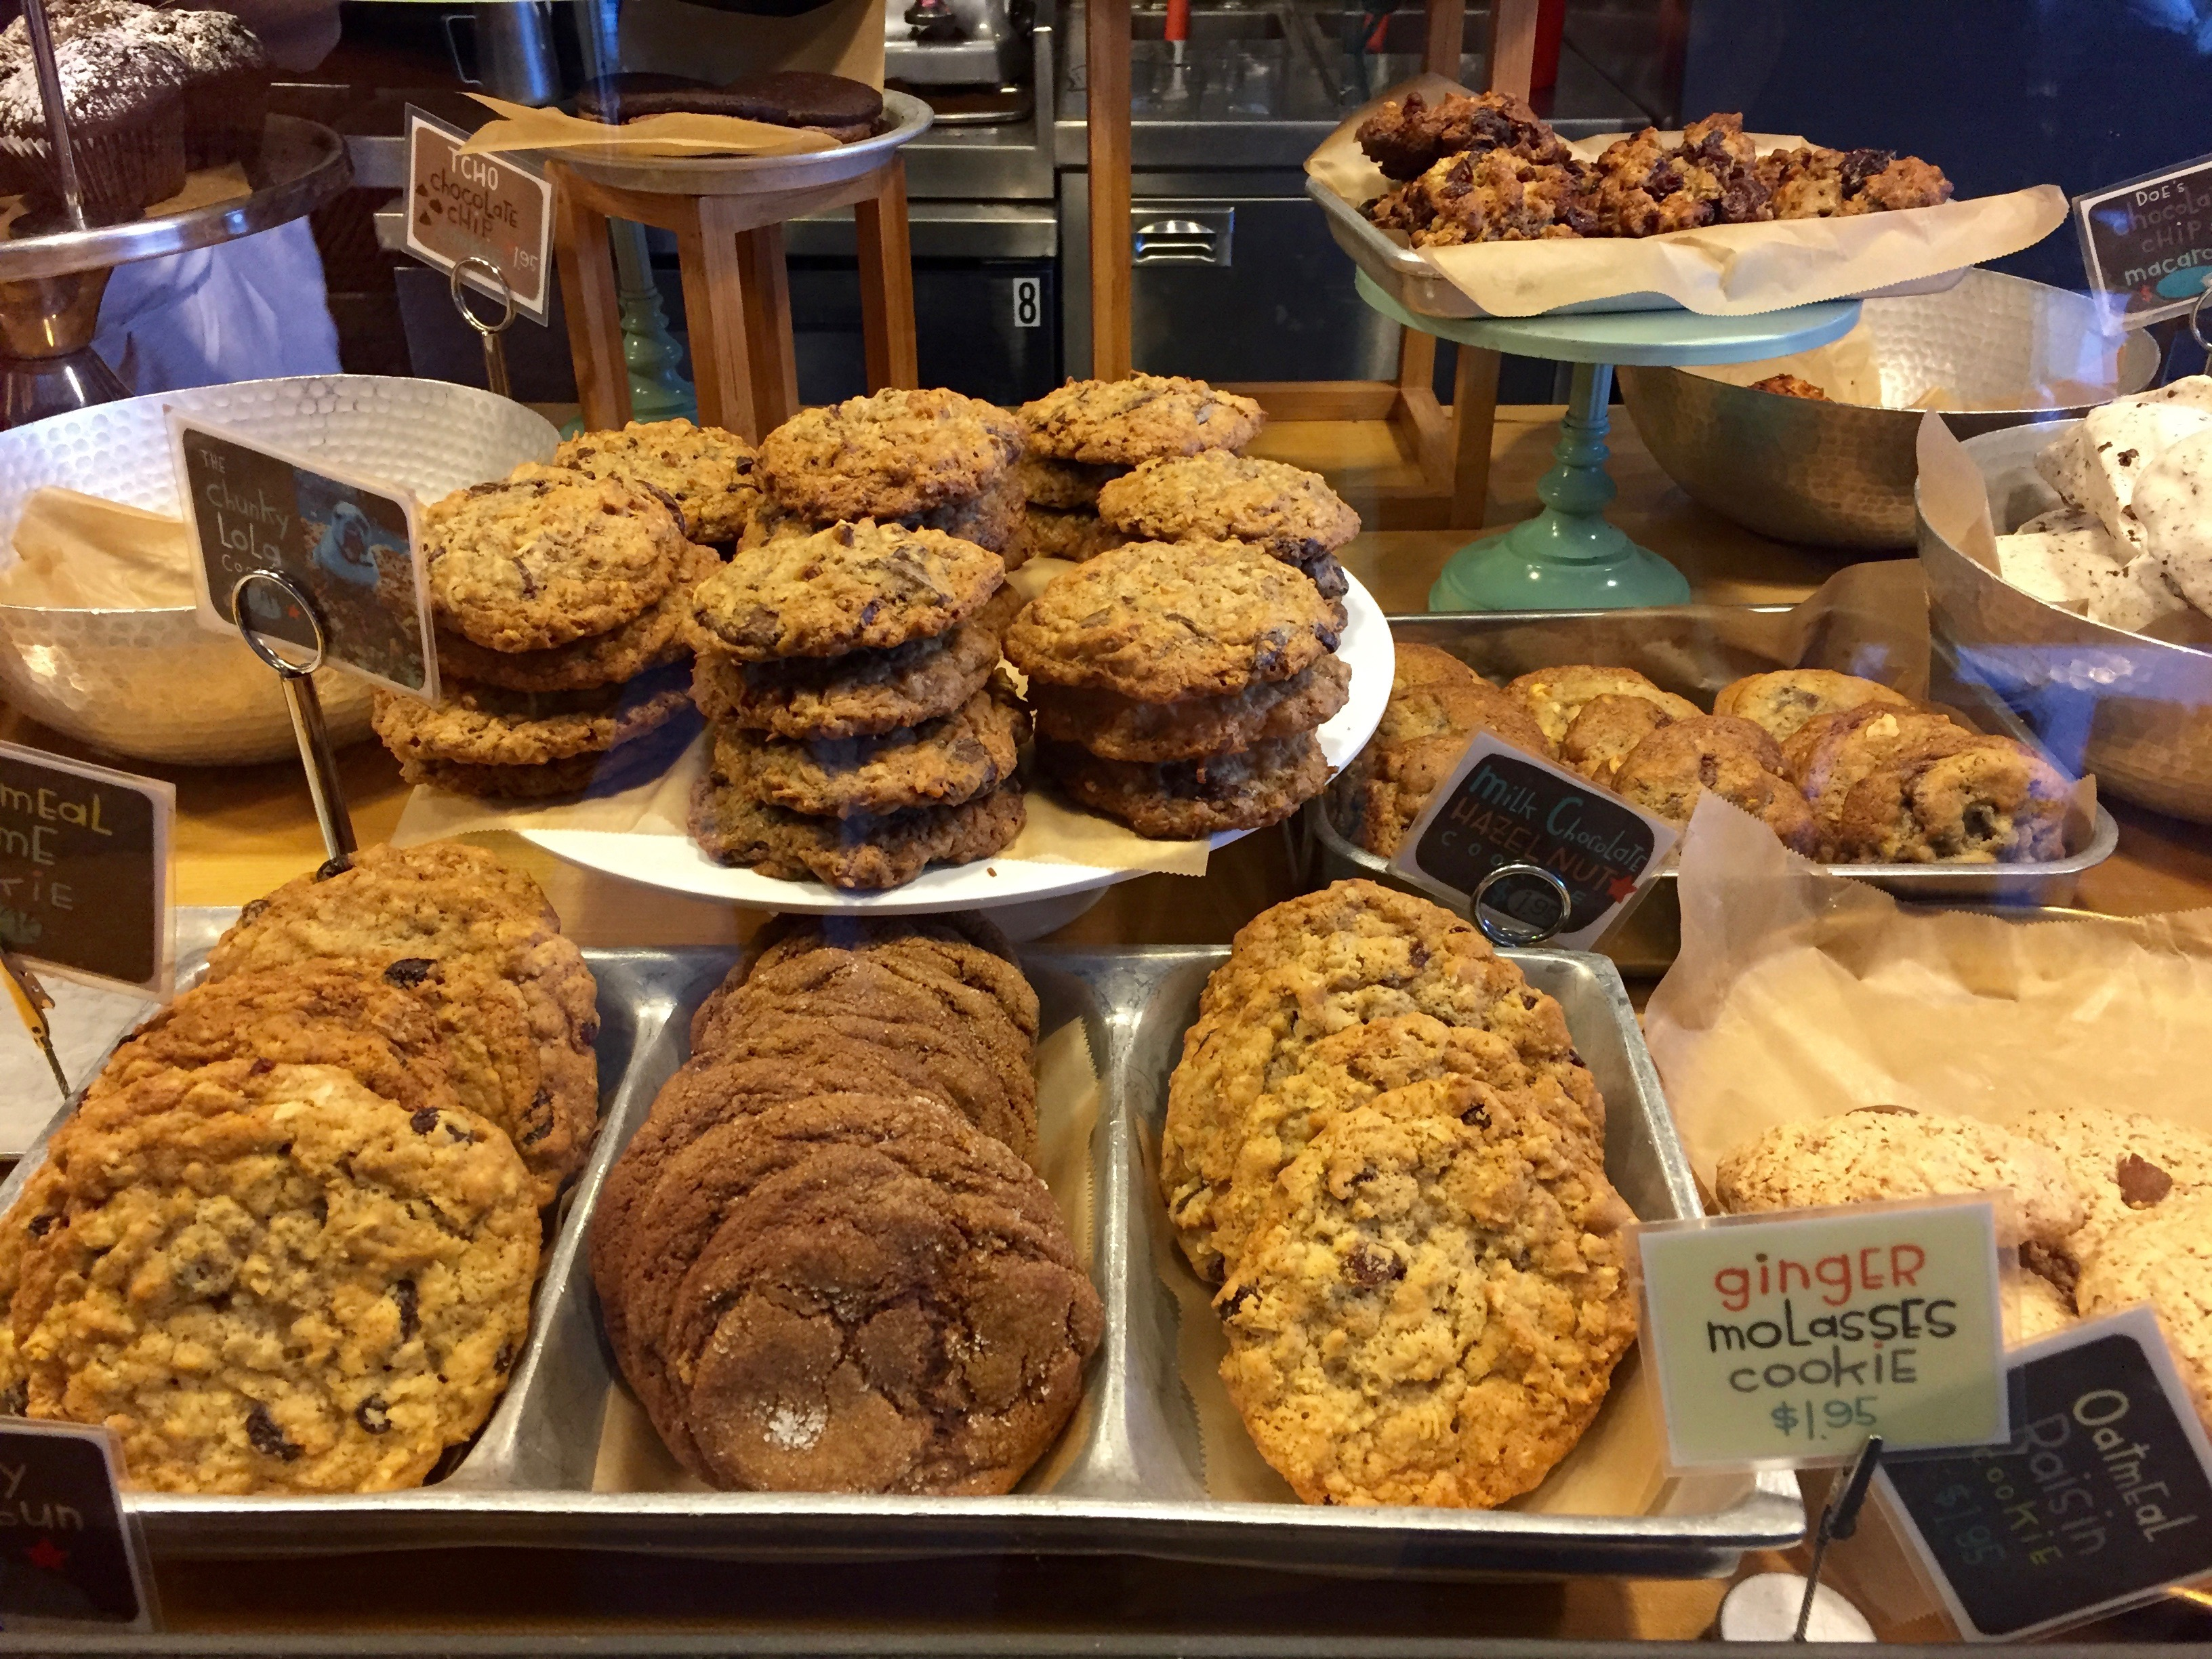 The most amazing baked goods from Flour in South Boston, MA